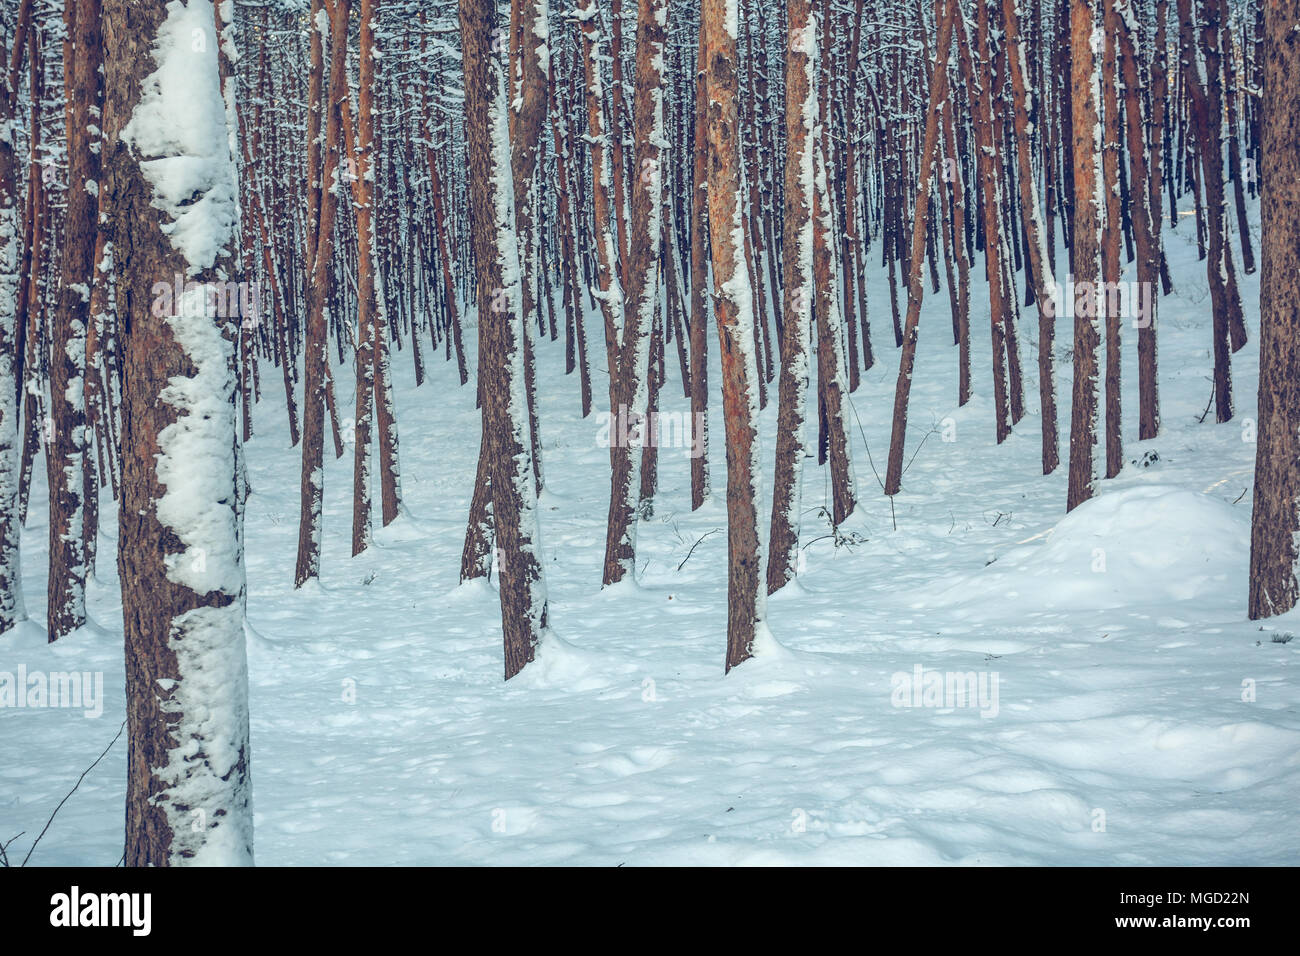 Snow over the spruces and pines. - Stock Image